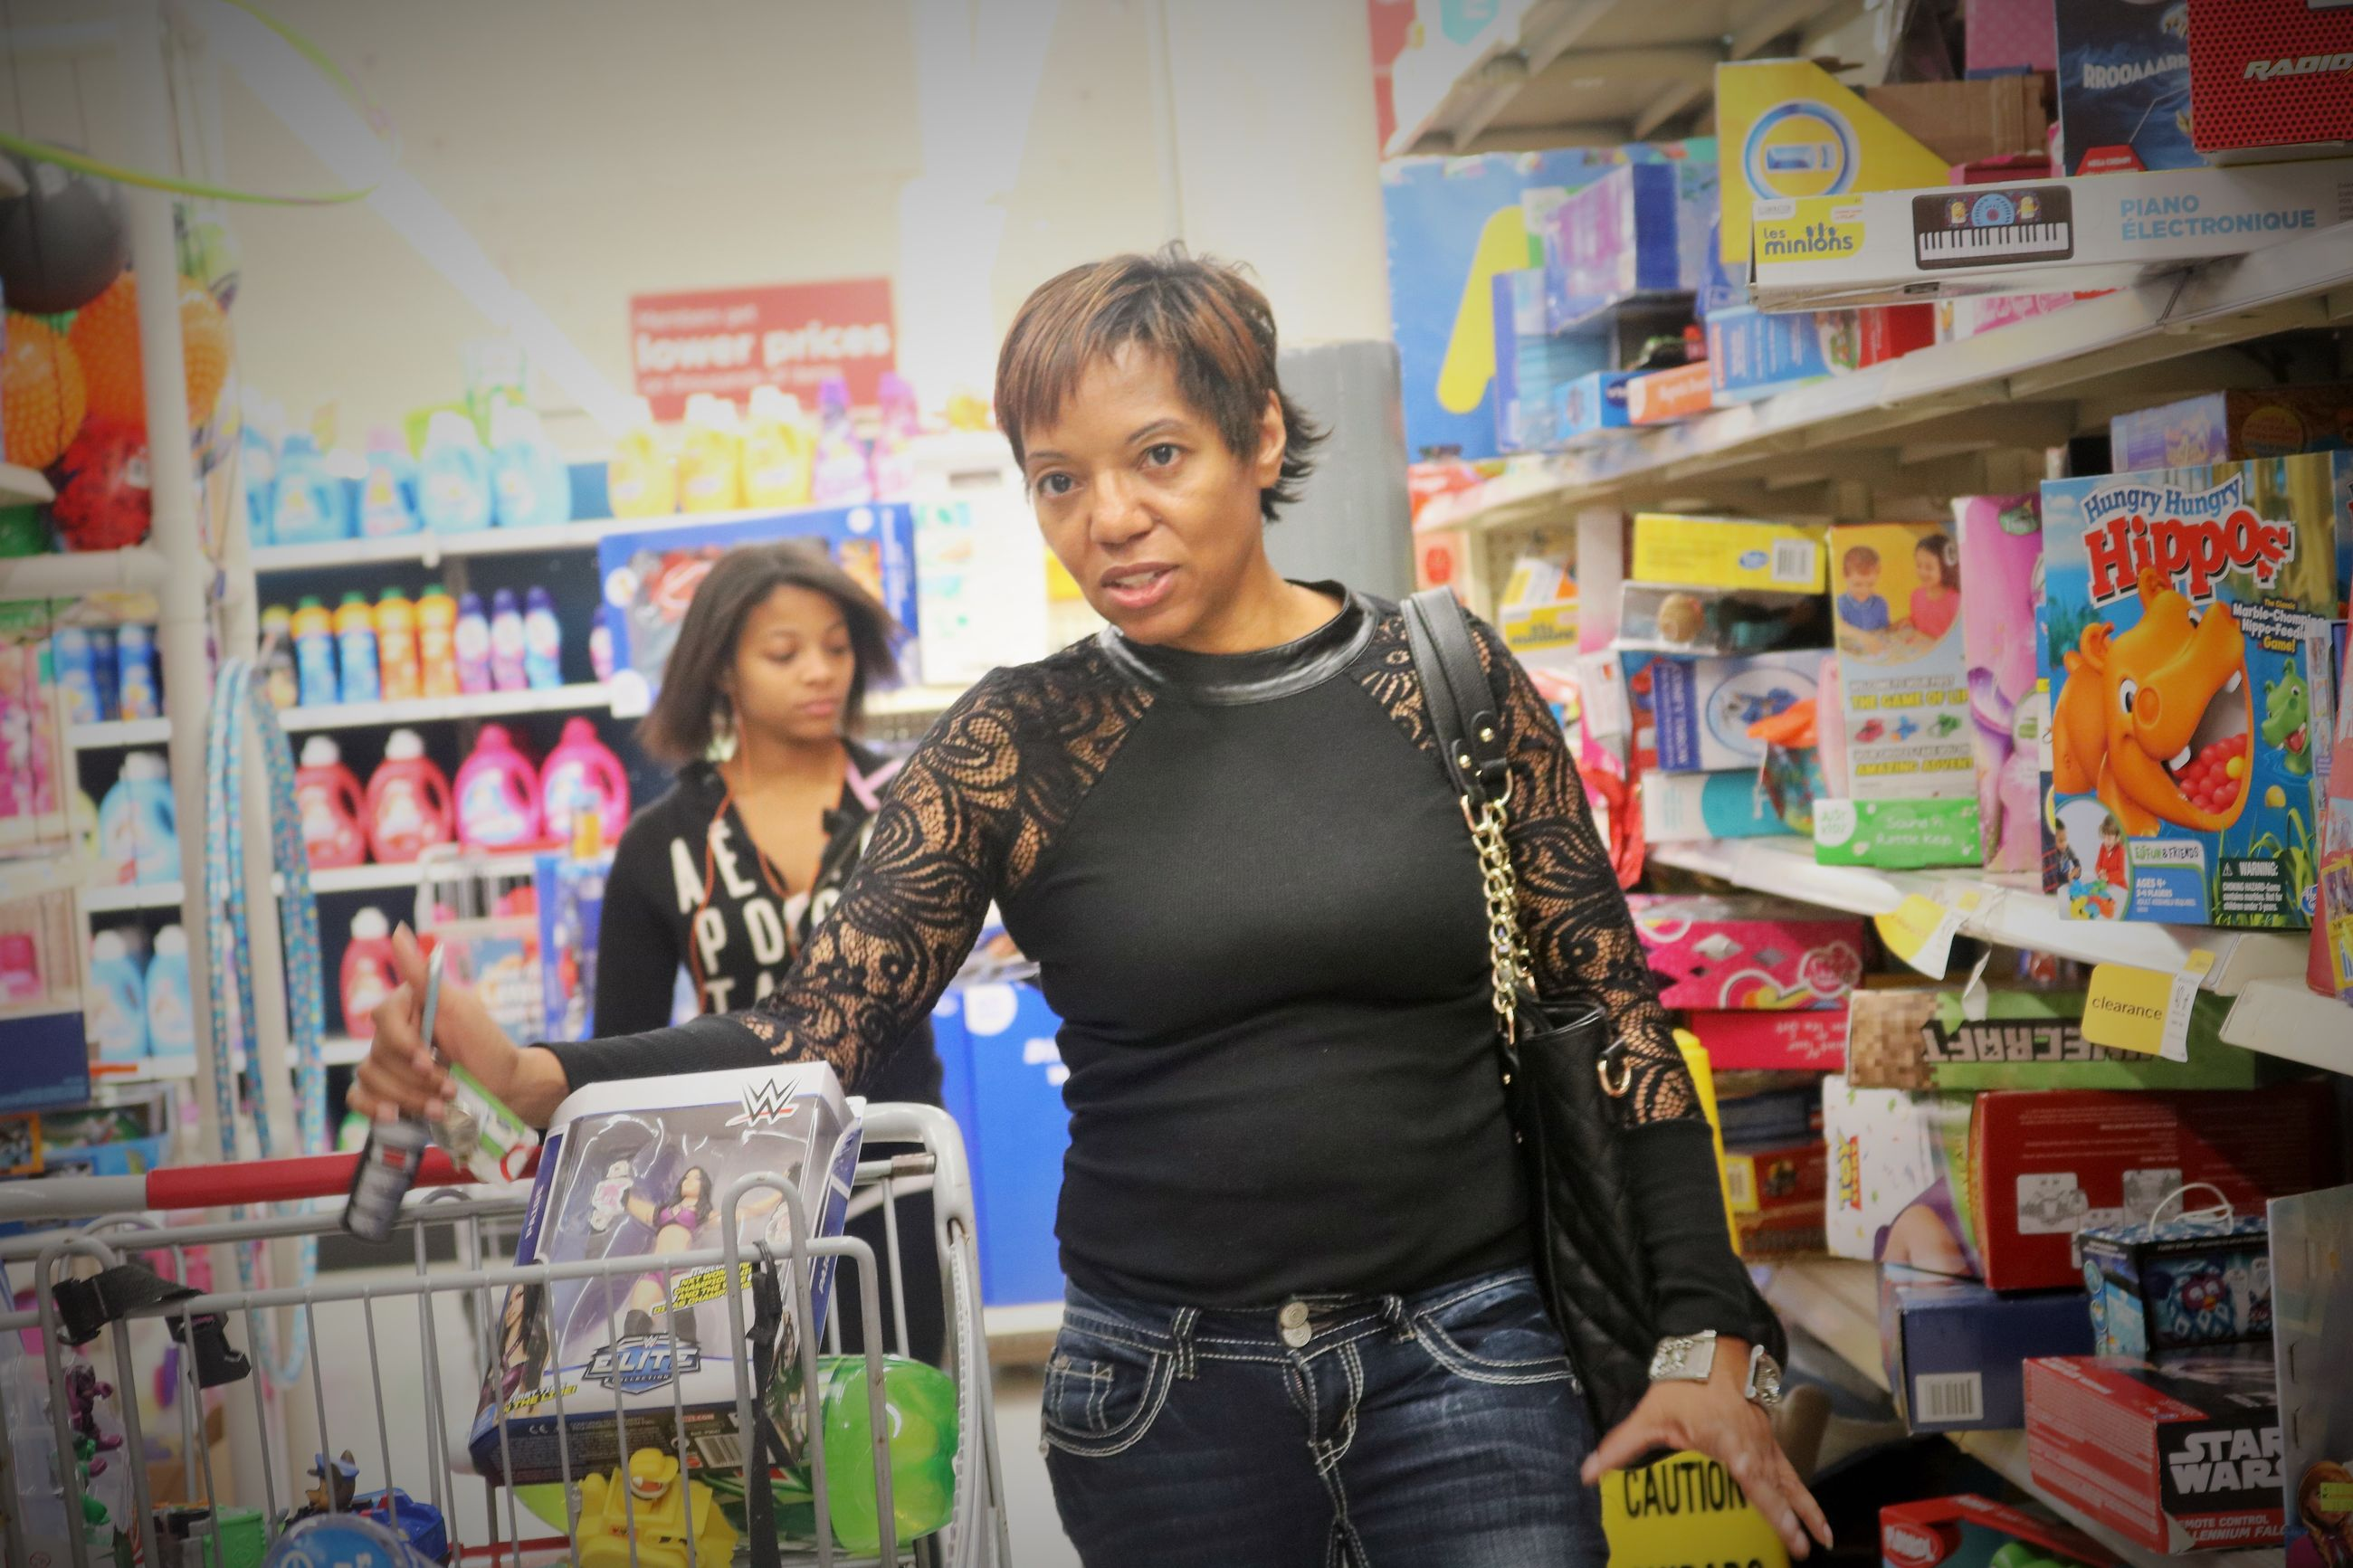 Yes last minute Christmas stocking stuffers shopping in Kmarts. Me Lovely Selfportrait Sexyselfie BlackWoman Beautifulblackwoman Shopping ♡ Having Fun :) Fun Christmastime Fayetteville N.C. Toys Selfie ✌ Selfie ♥ Simple Moment Photography Anywhere